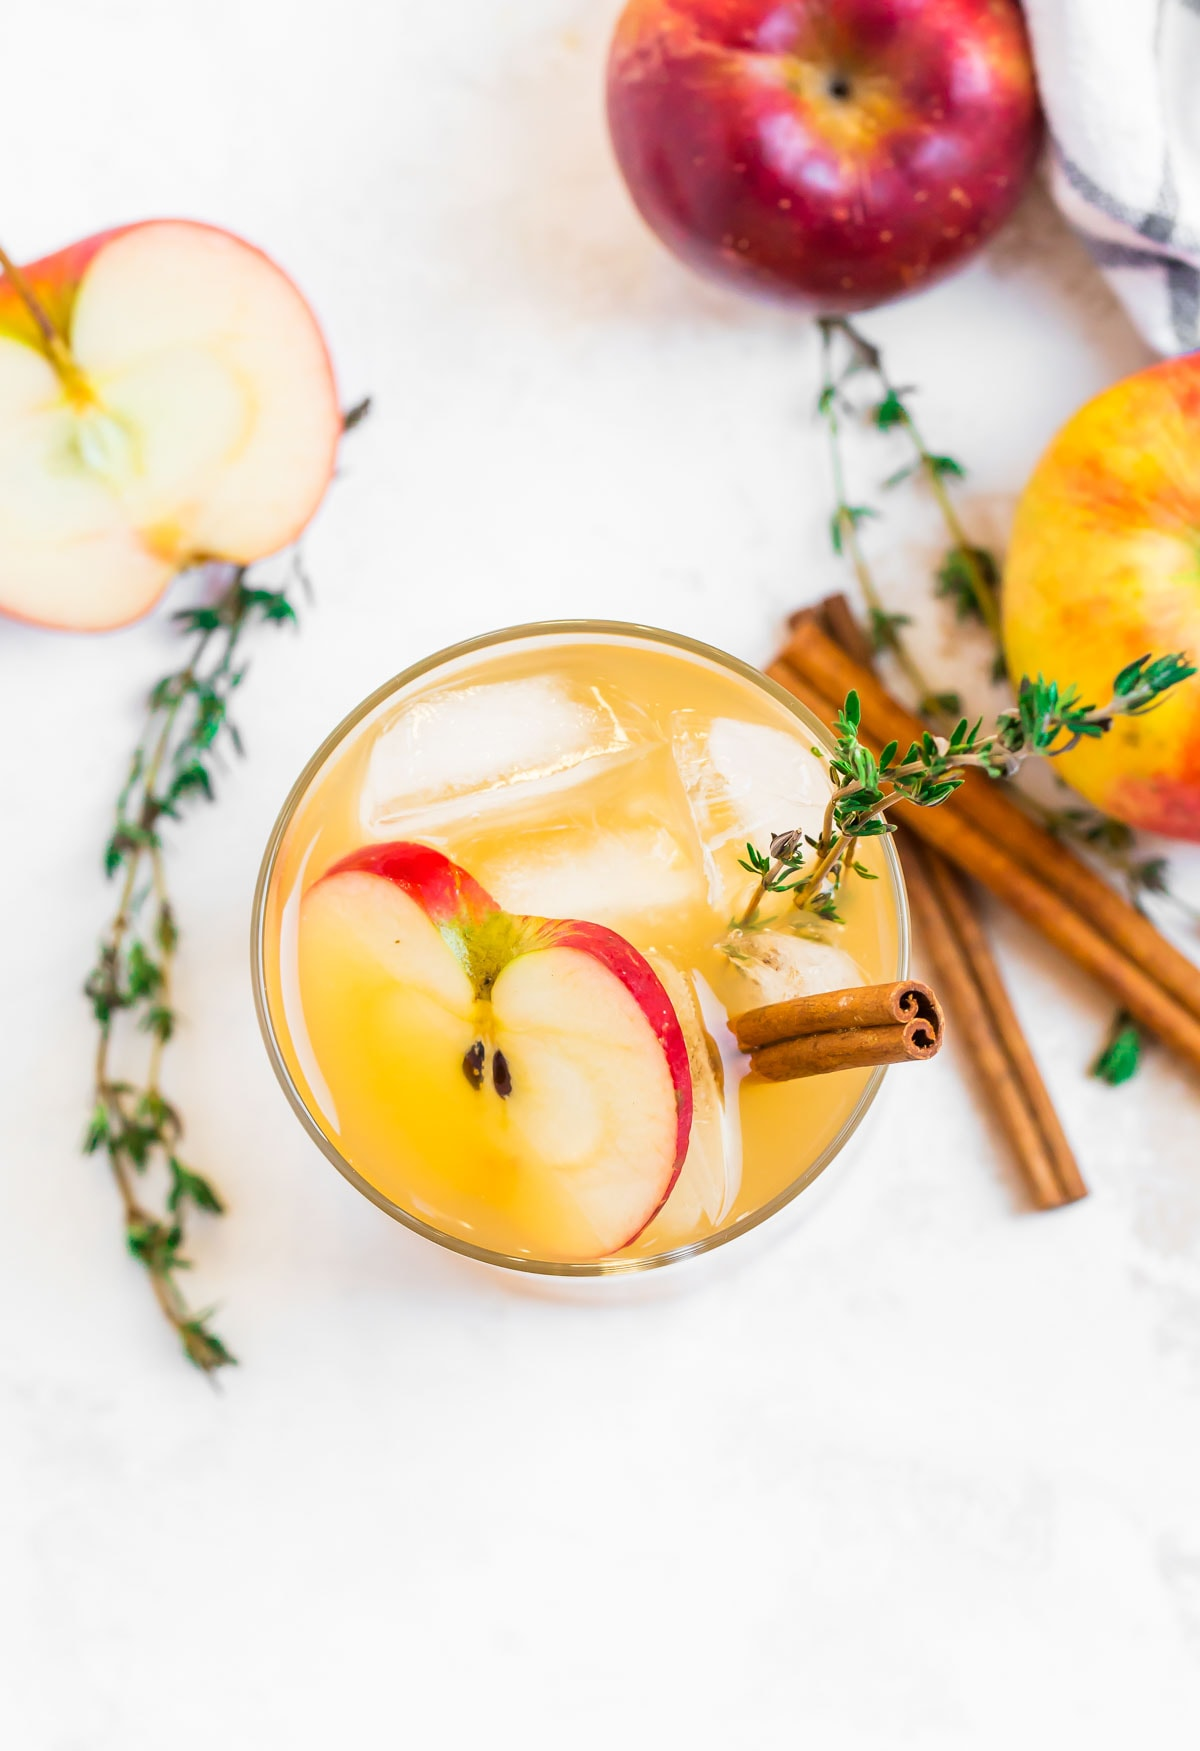 A drink in a glass next to apples and cinnamon sticks